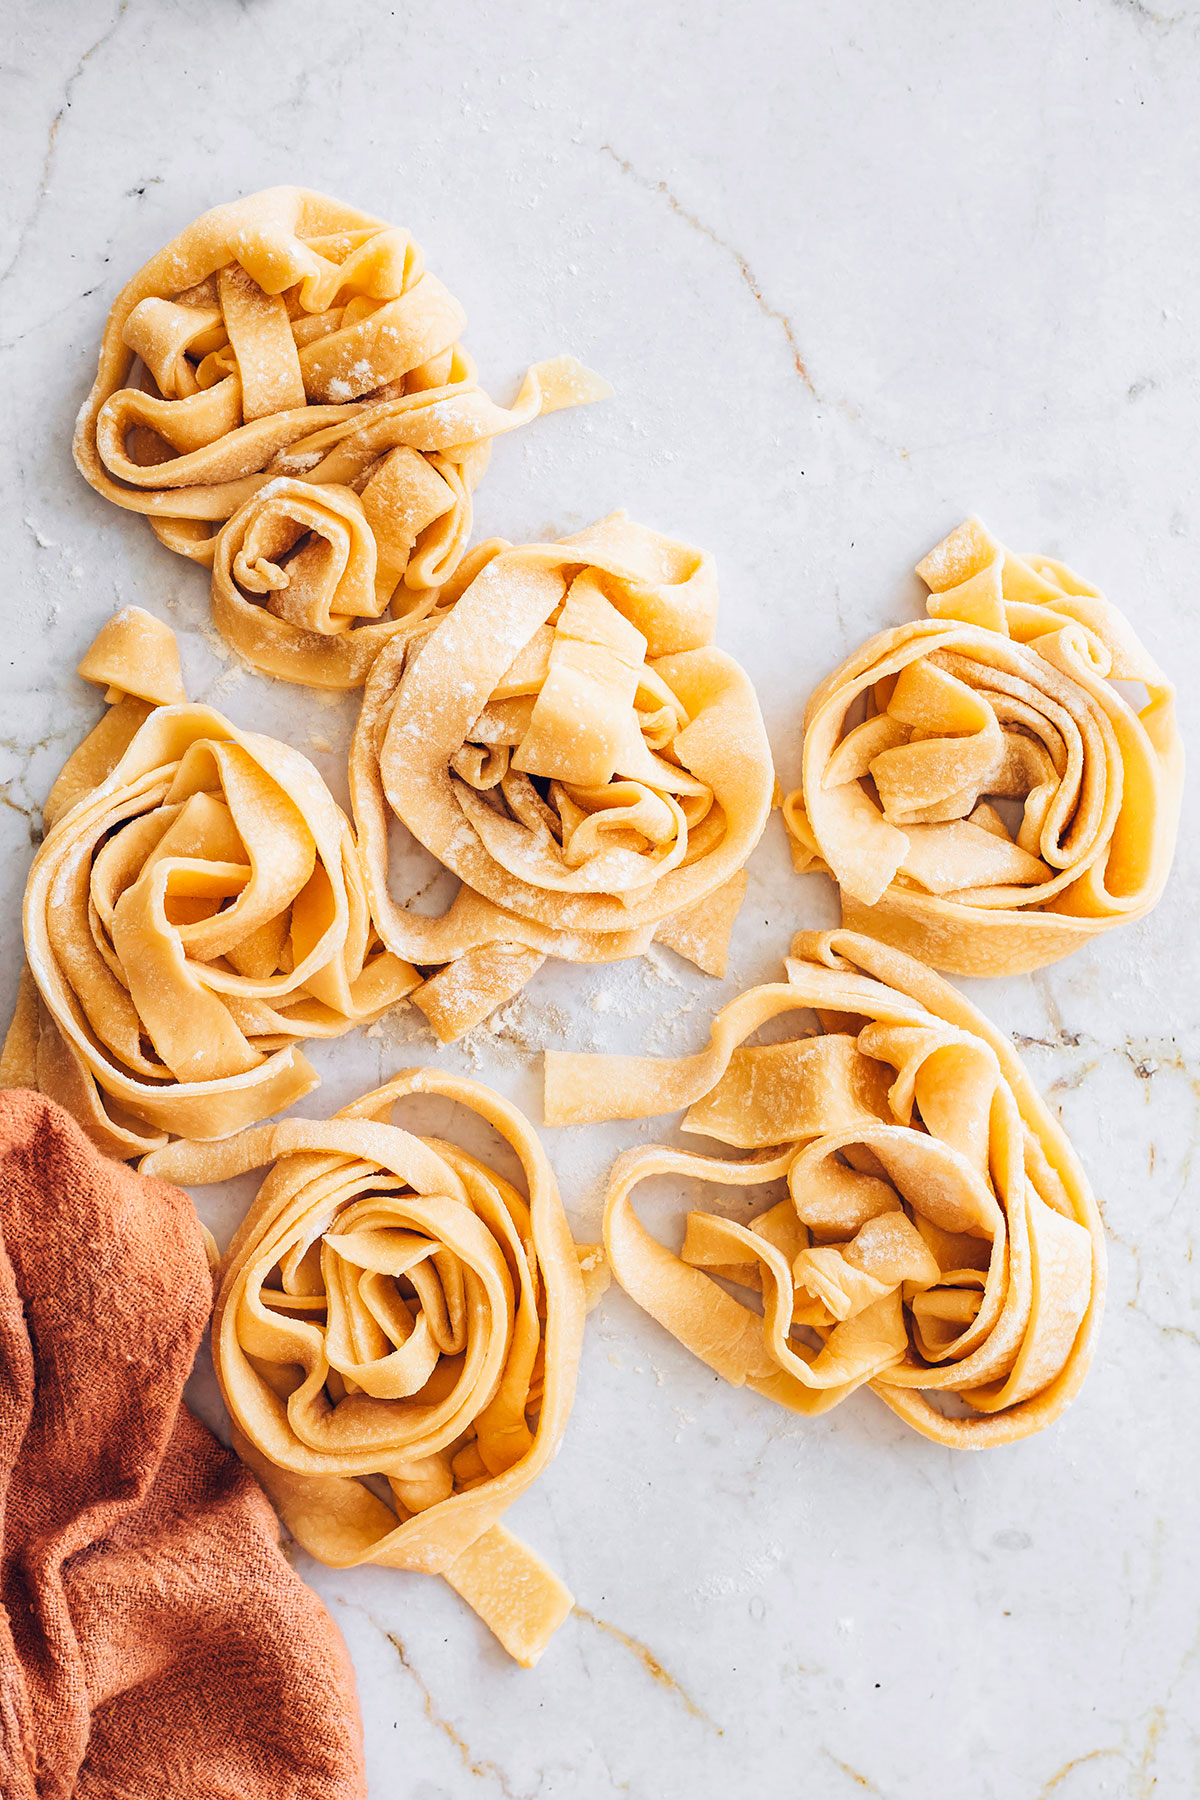 How to make homemade pasta the easy way